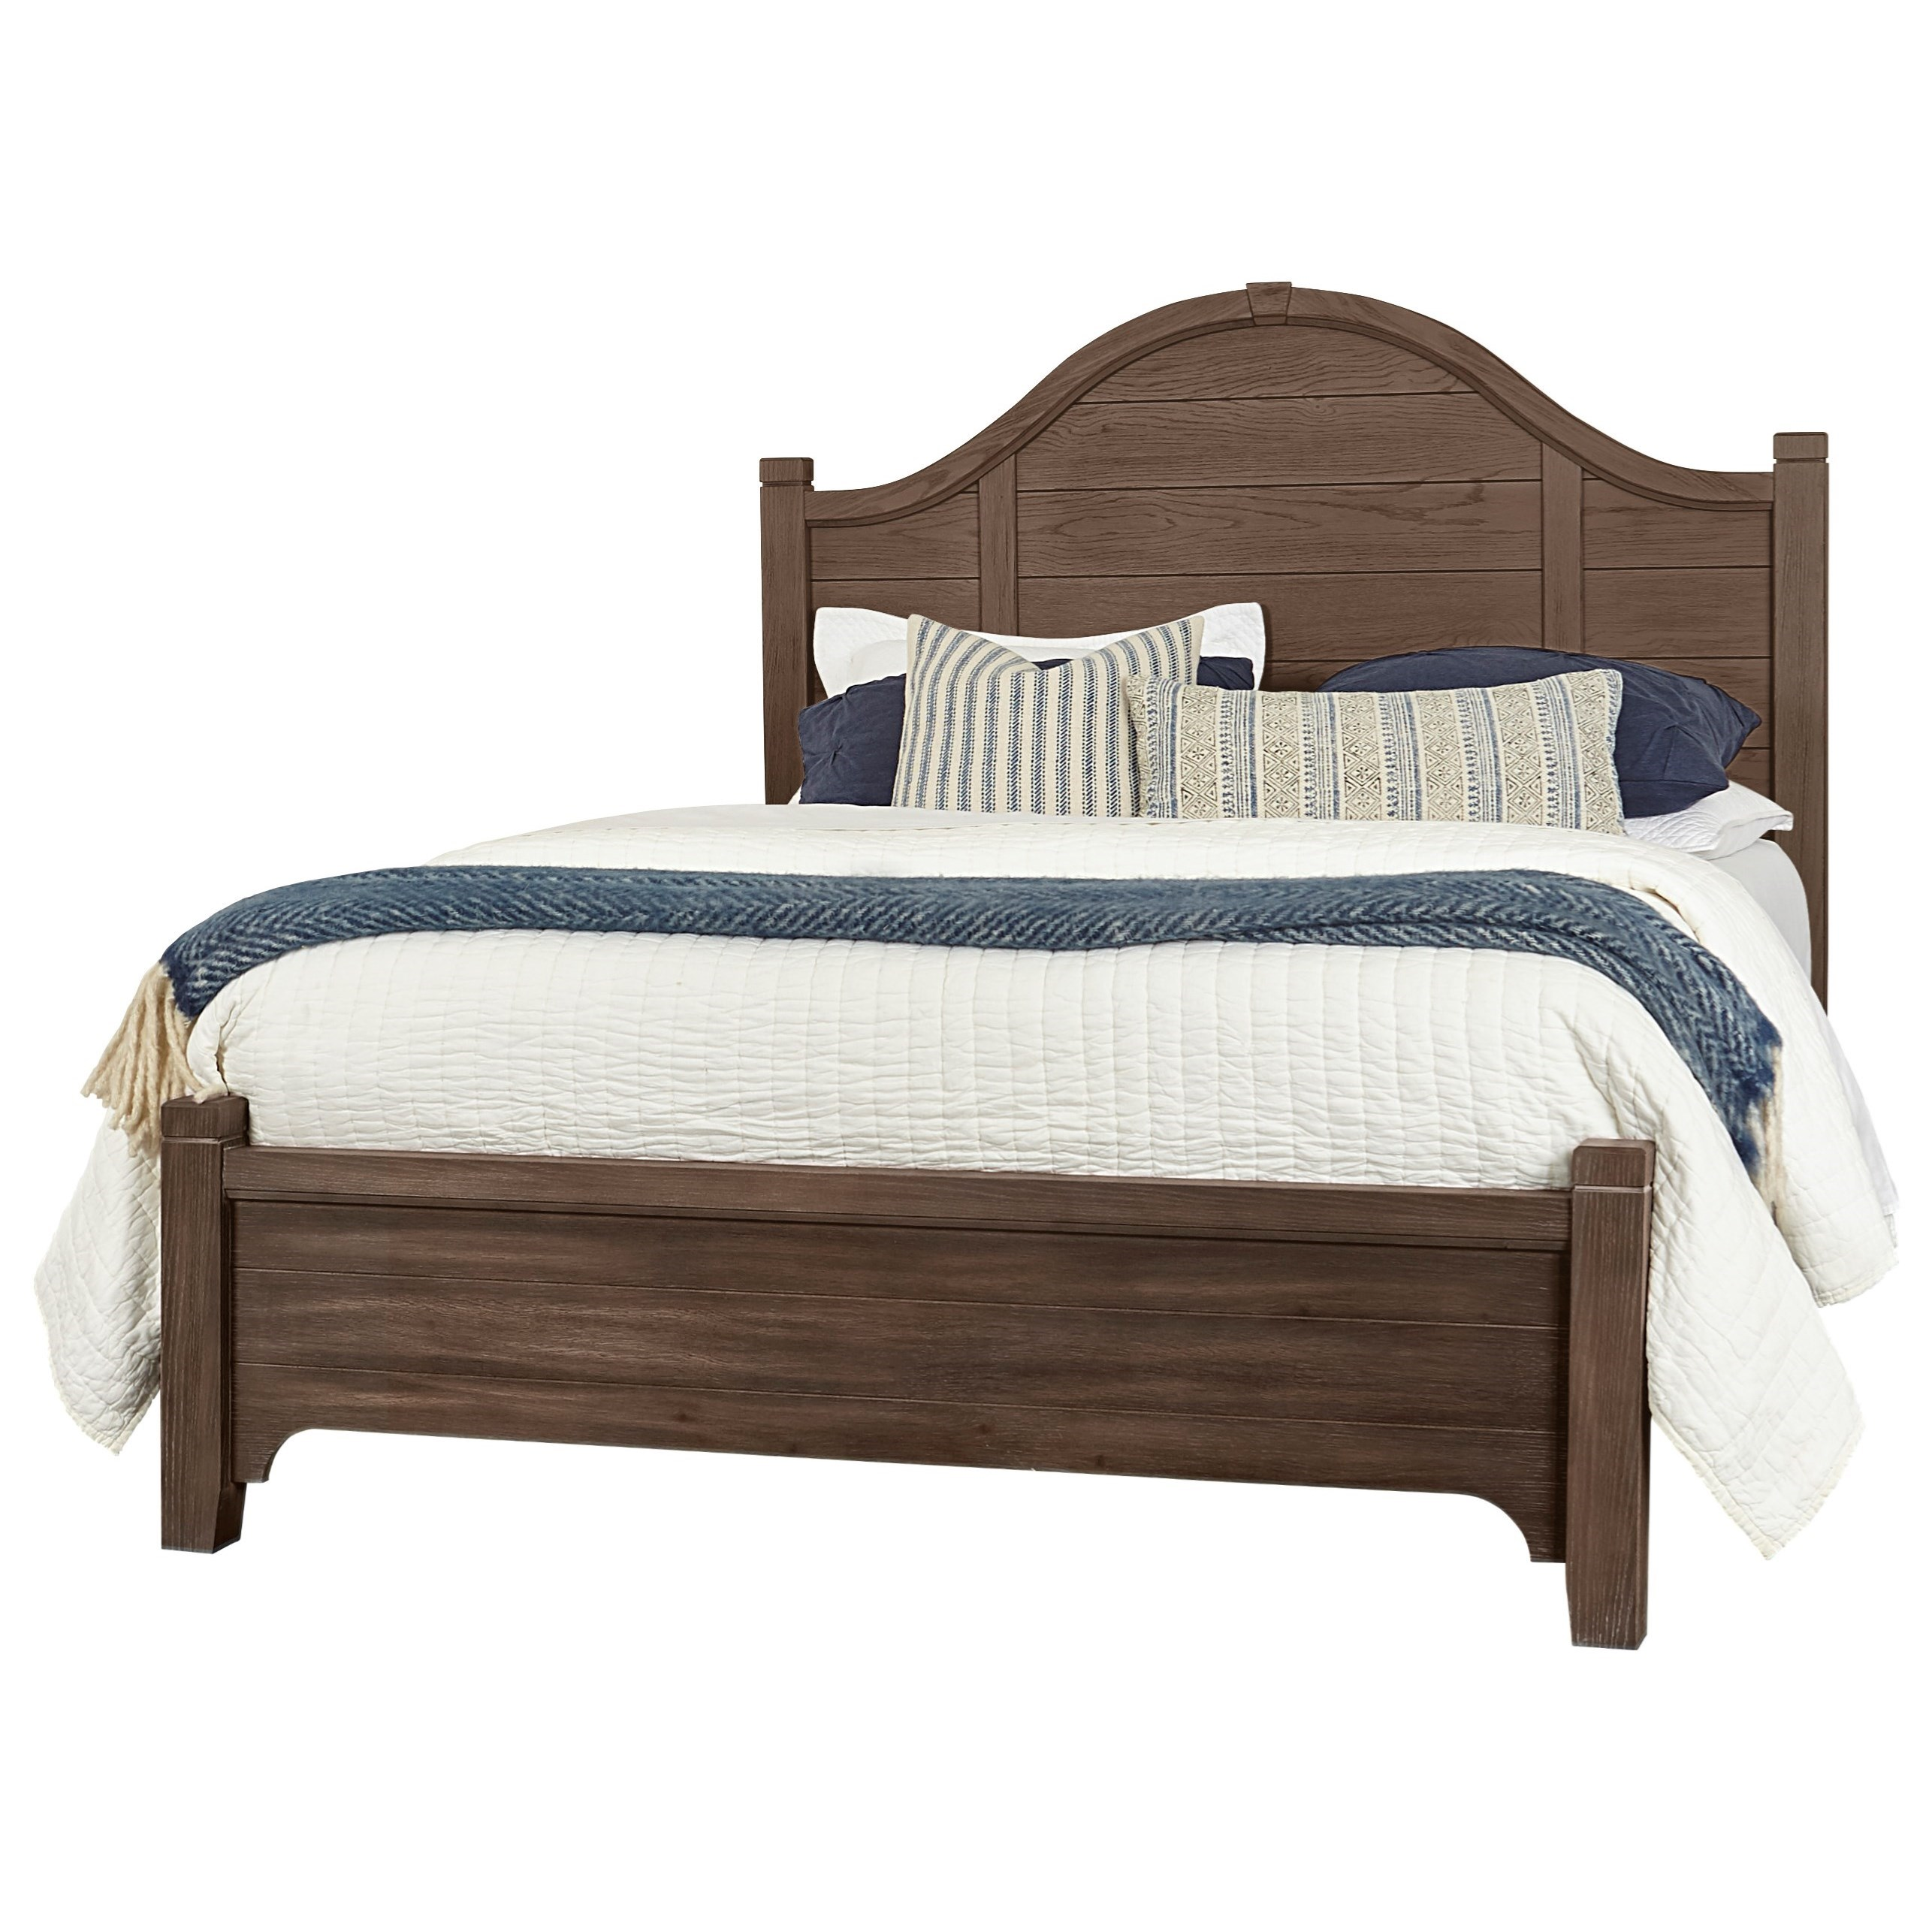 Bungalow King Arch Bed Low Profile Footboard by Vaughan-Bassett at Crowley Furniture & Mattress